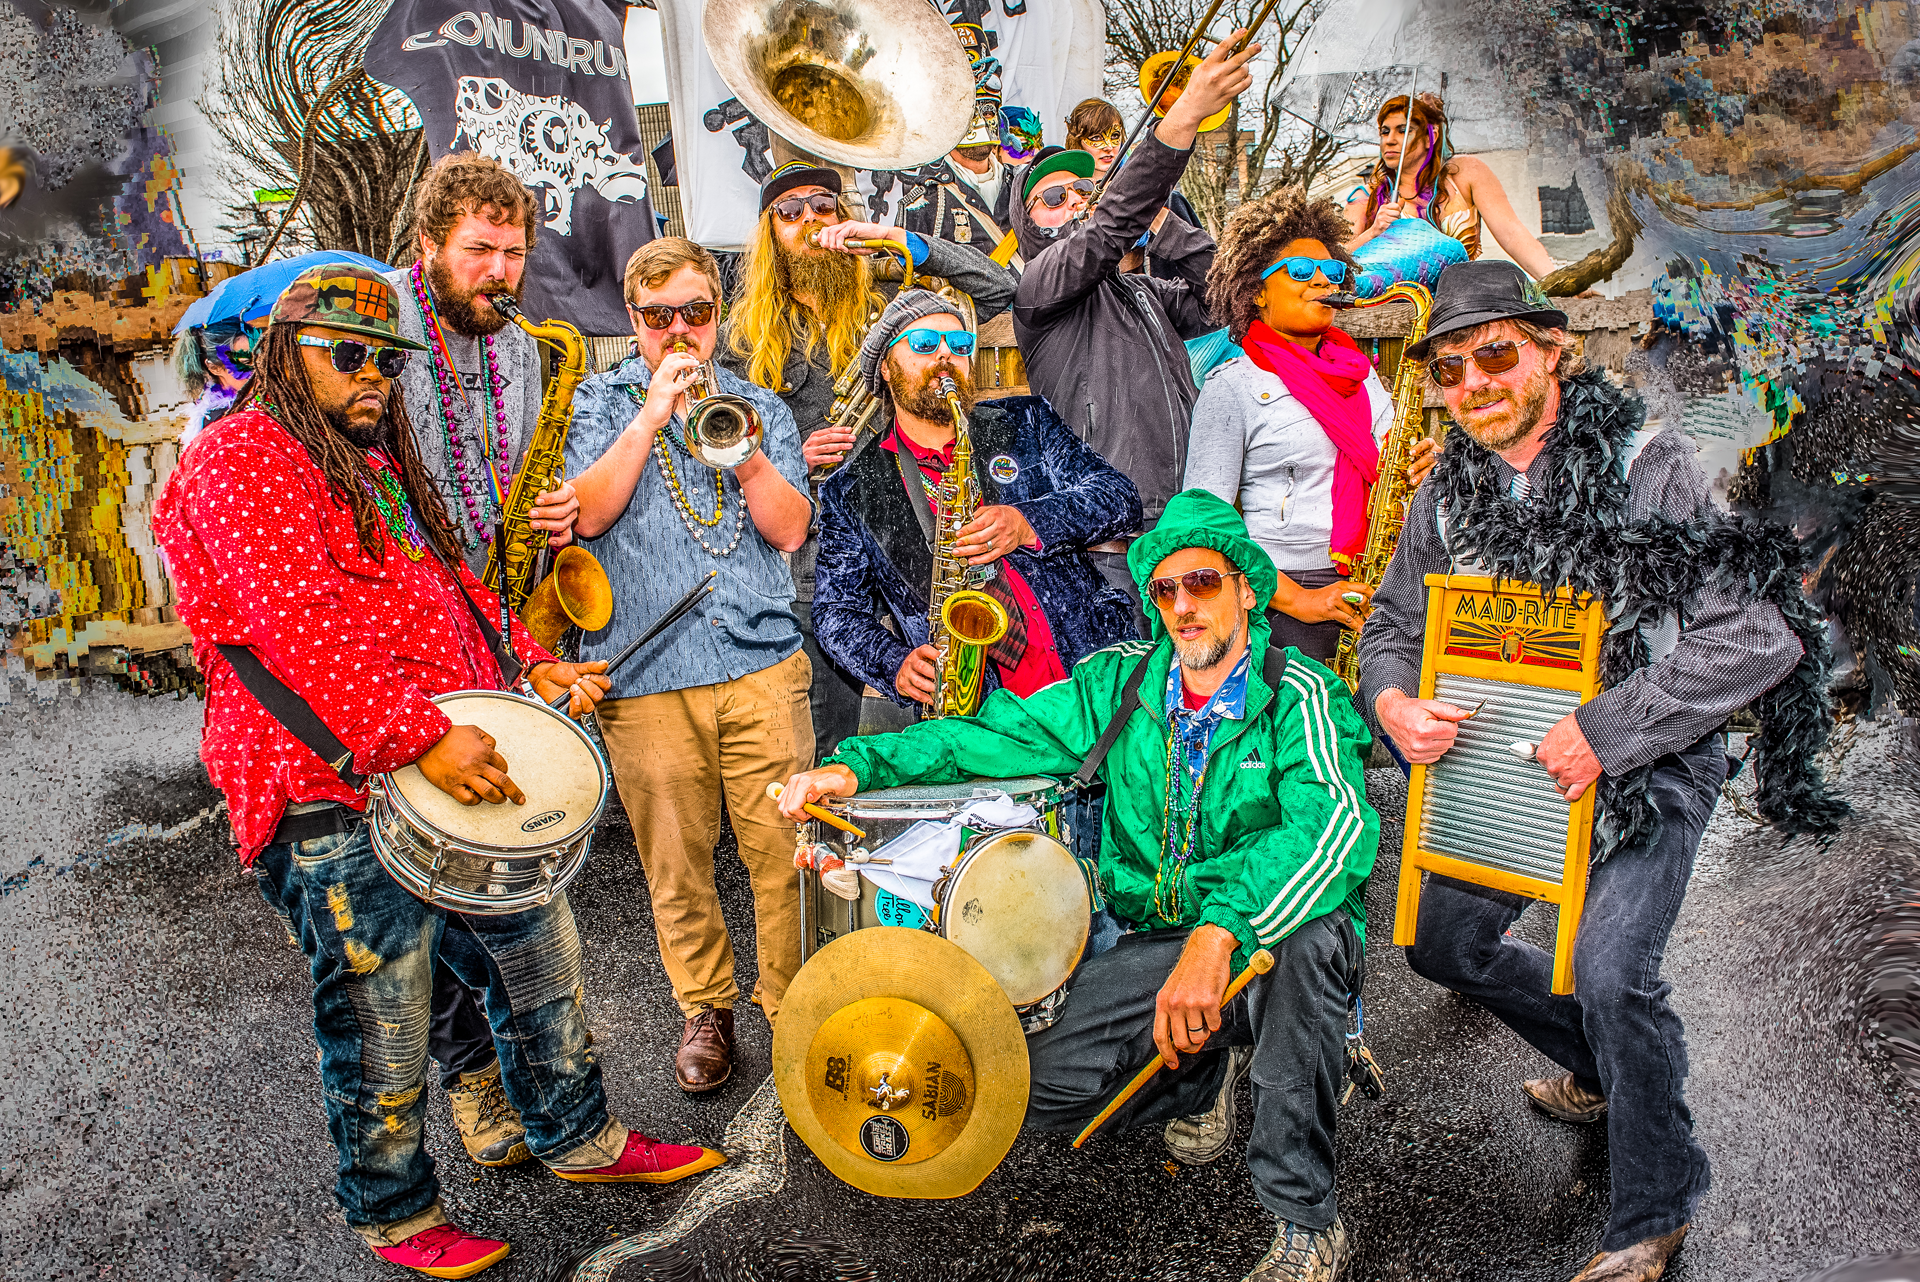 """Empire Strikes Brass (ESB) is a high energy Brass-Funk-Rock band hailing from the city of Asheville, North Carolina. Formed on the streets of their hometown, ESB is rooted in the New Orleans Brass Band tradition of second-line parades and deep moving grooves reminiscent of old school funk. Combining complex musical arrangements with thoughtful lyrical song structure, ESB can stretch out and dig deep when they are feeling it or keep things tight and concise. The fat sound of the horns paired with one dirty rhythm section makes the music downright psychedelically nasty! Founded in 2012, ESB intentionally stretches the boundaries of the stereotypical brass band paradigm, fusing sounds from various genres and weaving them together with the common thread of Brass. The diversity of the music within their sets keep audiences guessing what is next to come.  Featuring rich group and strong lead vocals including Grammy Award winner Debrissa Mckinney (Secret Agent 23 Skidoo), ESB not only takes its audiences on a ride to the dark side and back instrumentally, they also use the force of soaring melody and lush harmony to transport the listeners to another dimension. The band released its debut album, """"Theme For A Celebration"""" in 2017 and it was tapped as one of the top 100 album releases in 2017 by WNCW 88.7 radio. Since their conception, ESB has been a consistent fixture at various festivals throughout the east coast.They've had the pleasure of having Warren Haynes (Allman Bros. Band and Gov't Mule) sit in with them at New Mountain Amphitheater in Asheville, NC and the honor of headlining four years in a row celebrating the life of Dizzy Gillespie in his hometown of Cheraw, SC, for the South Carolina Jazz and Heritage Festival. ESB has co-billed with such artists as Dr. John & Lettuce. The horns have sat in on performances with Galactic, The Big Something, and many others. ESB horn players JP Furnas, Paul Juhl and Alex Bradley are also featured on the live album compilation fr"""